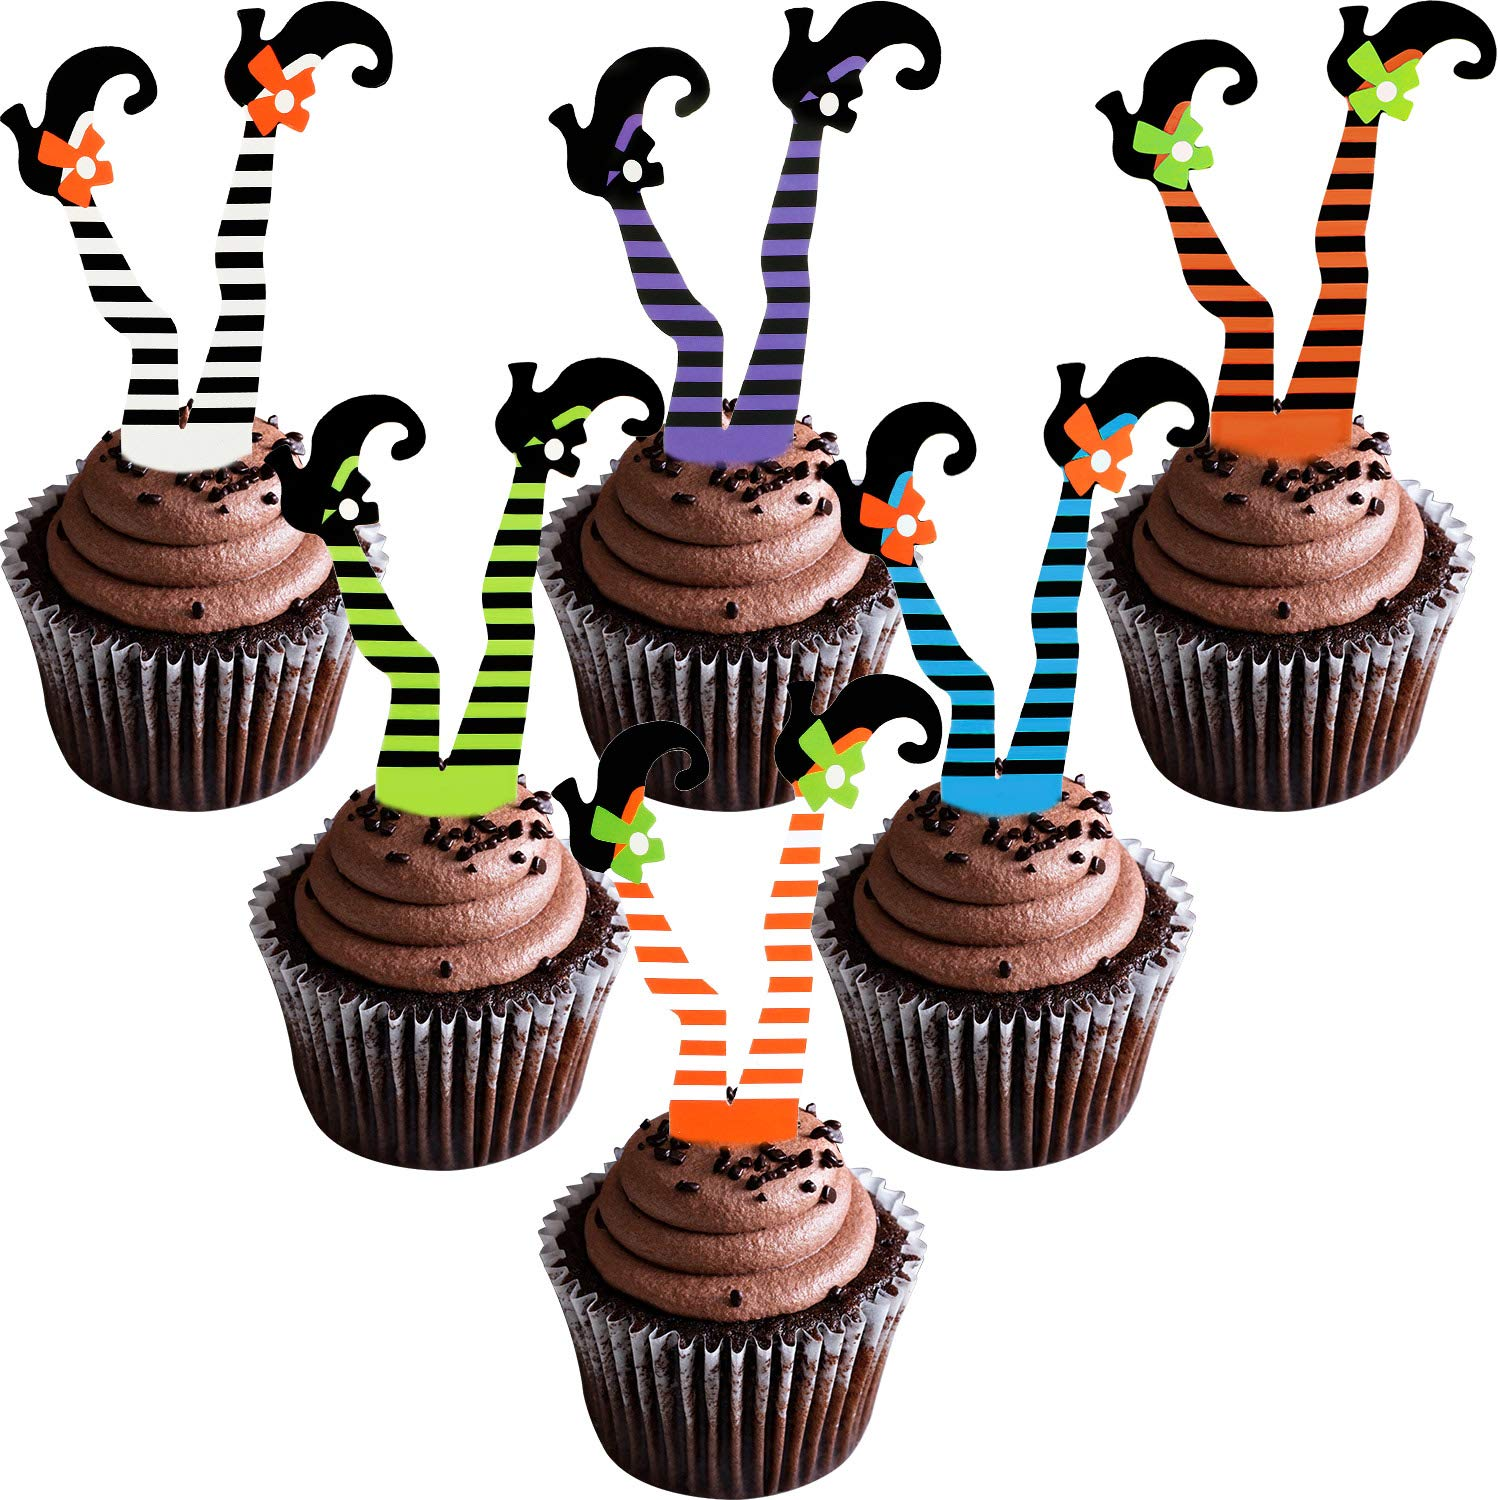 48 Pieces Halloween Cupcake Toppers Happy Halloween Props Witch's Boot Cupcake Decorations for Party Favors, 6 Colors by Boao